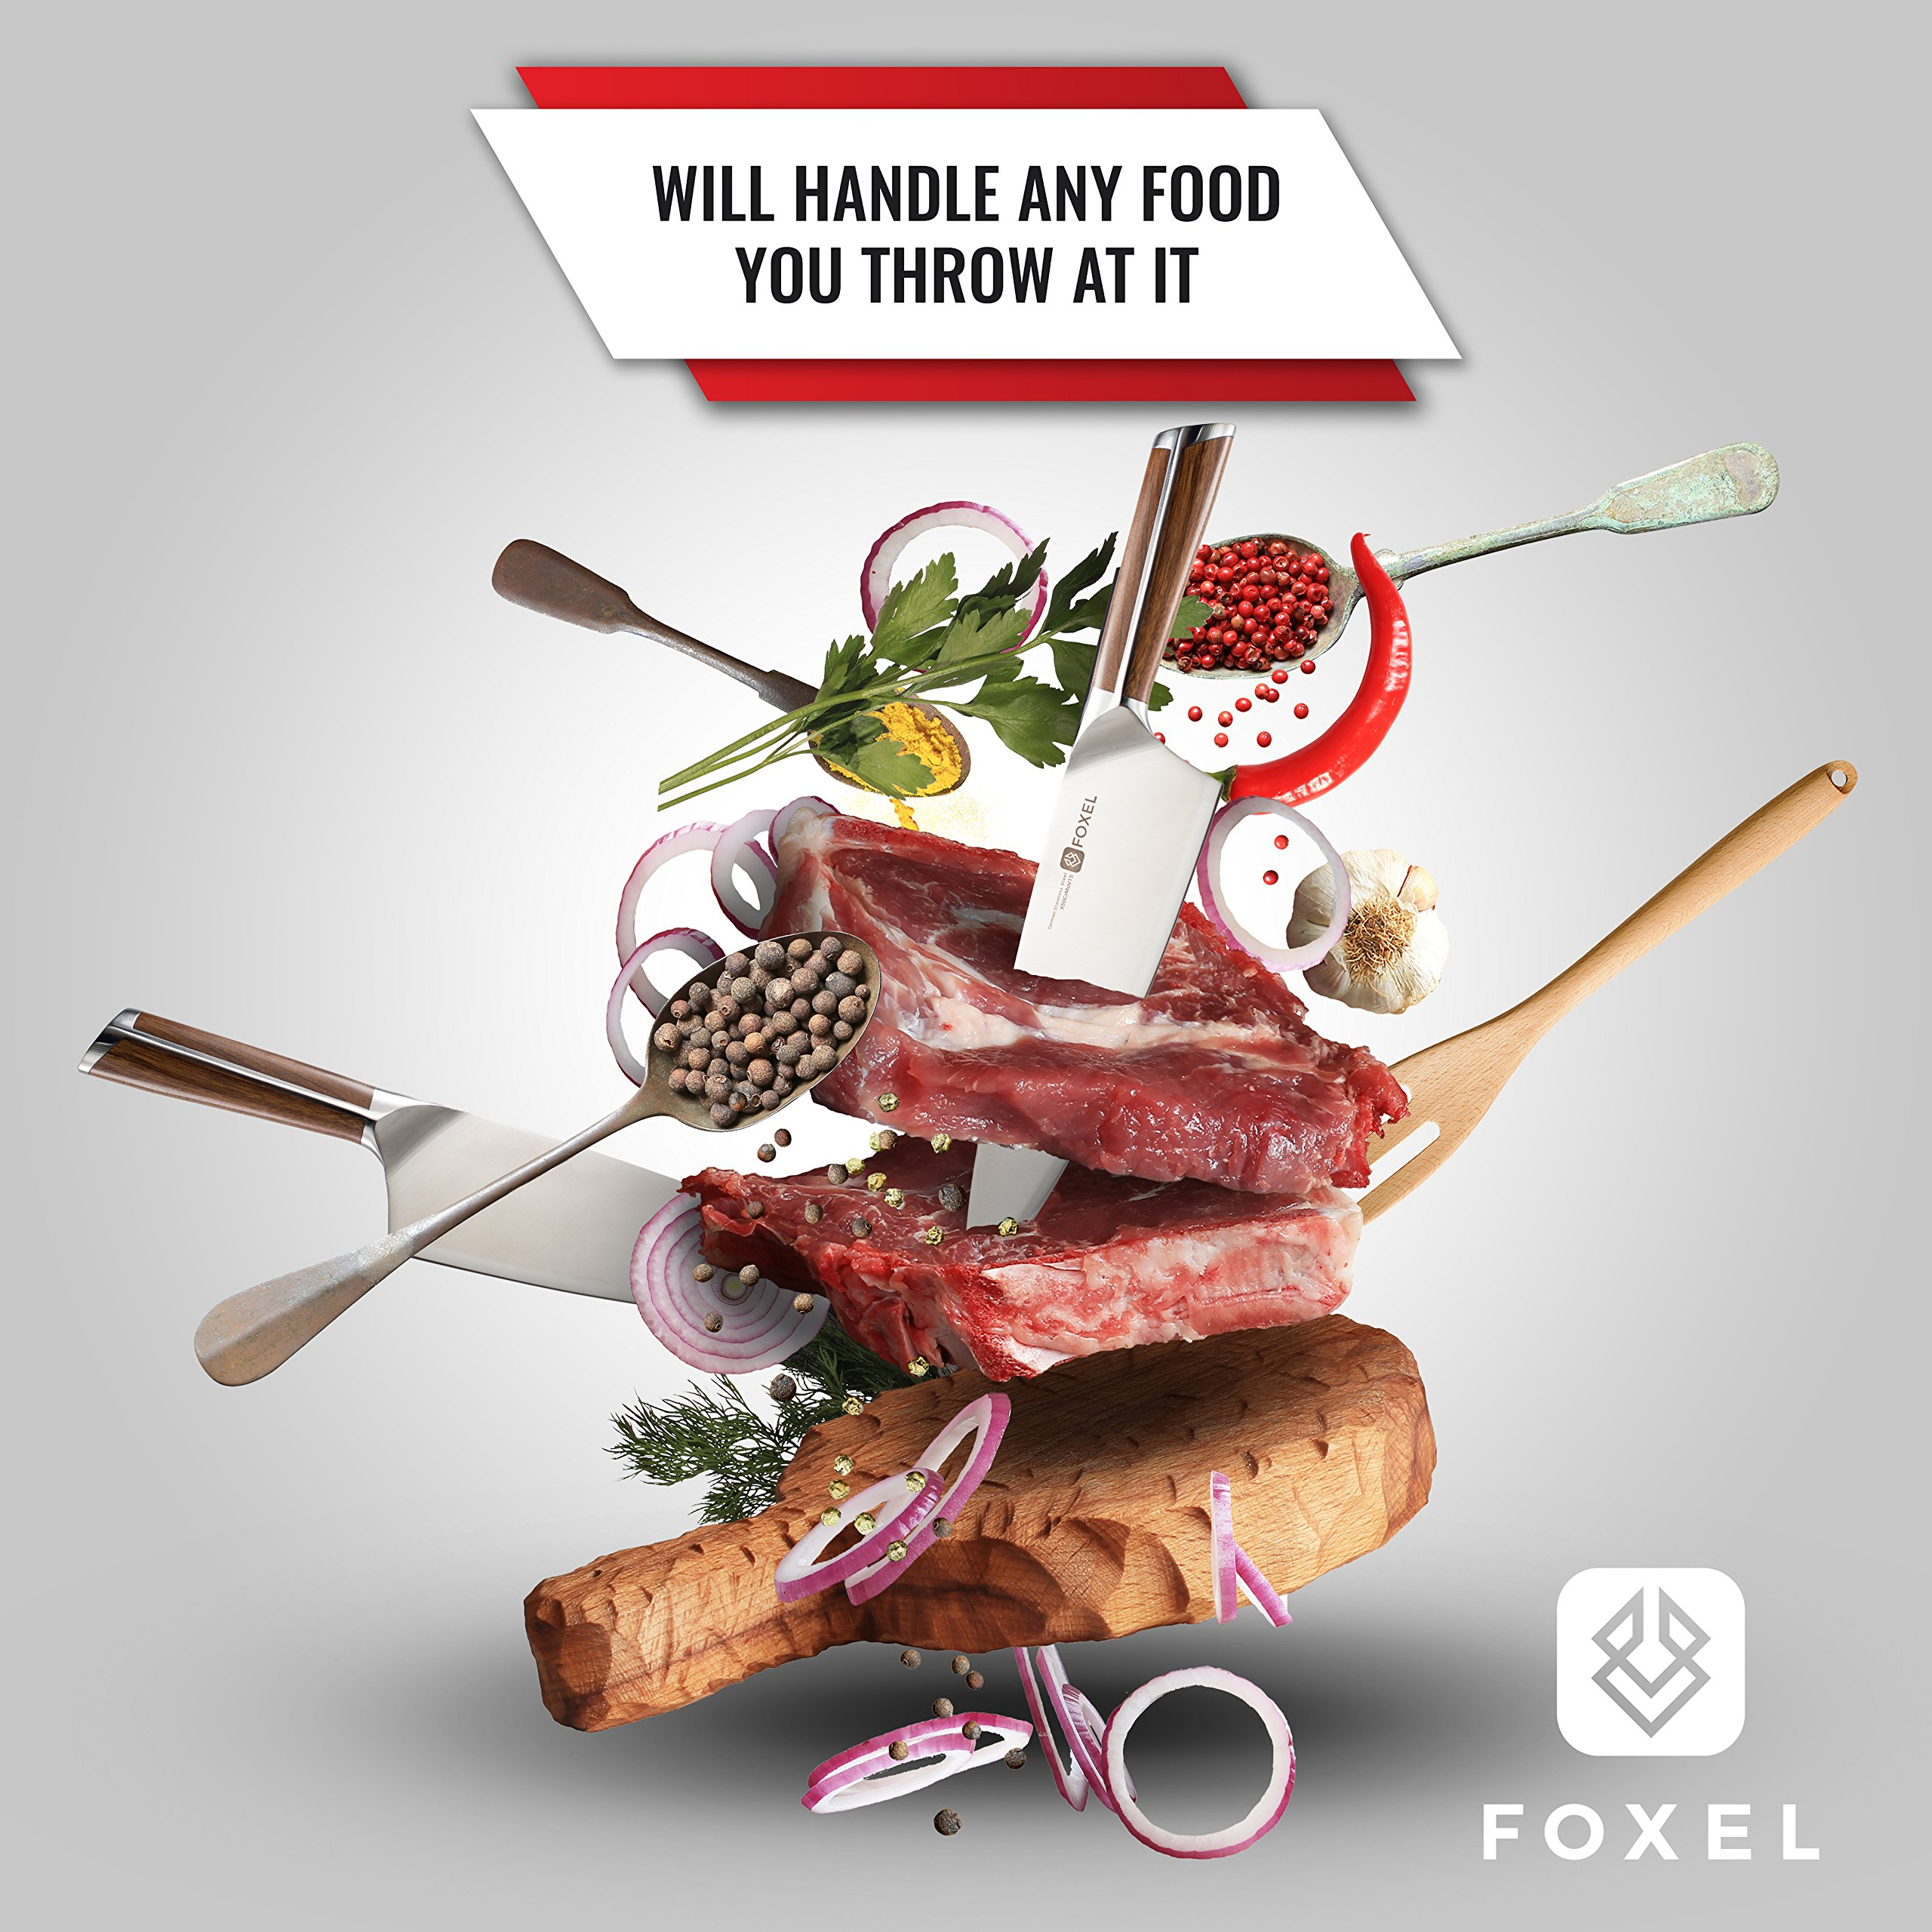 Chef Kitchen Knife 8 inch Japanese Inspired American Design - FOX Series Chef's Knives are Made for Rugged Everyday Use with Razor Sharp German High Carbon Steel and Ergonomic Sandal Wood Handle by FOXEL (Image #6)